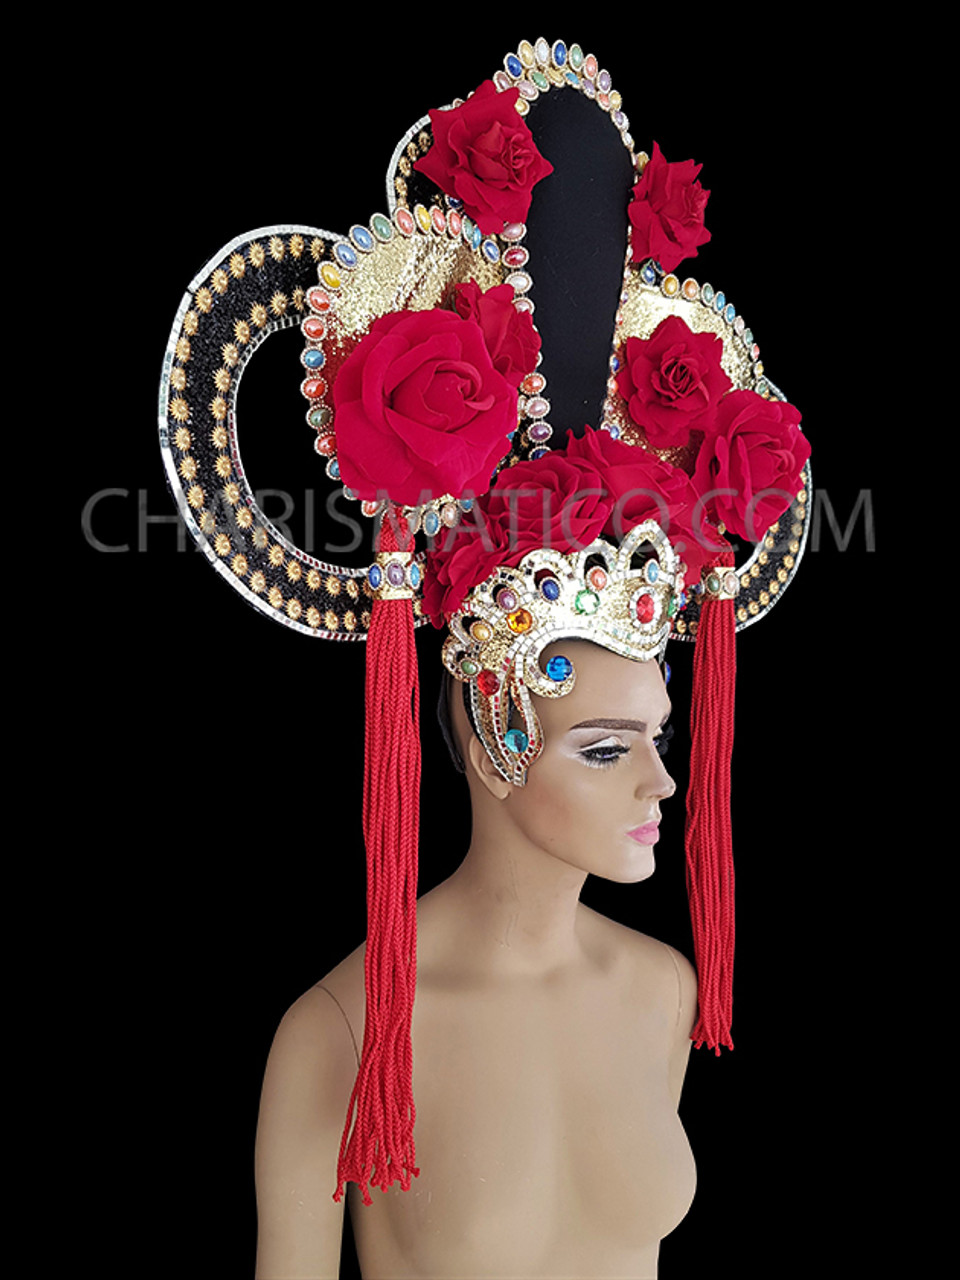 Highly Detailed Braided and Bejeweled Diva/'s Chinese Style Showgirl Headdress